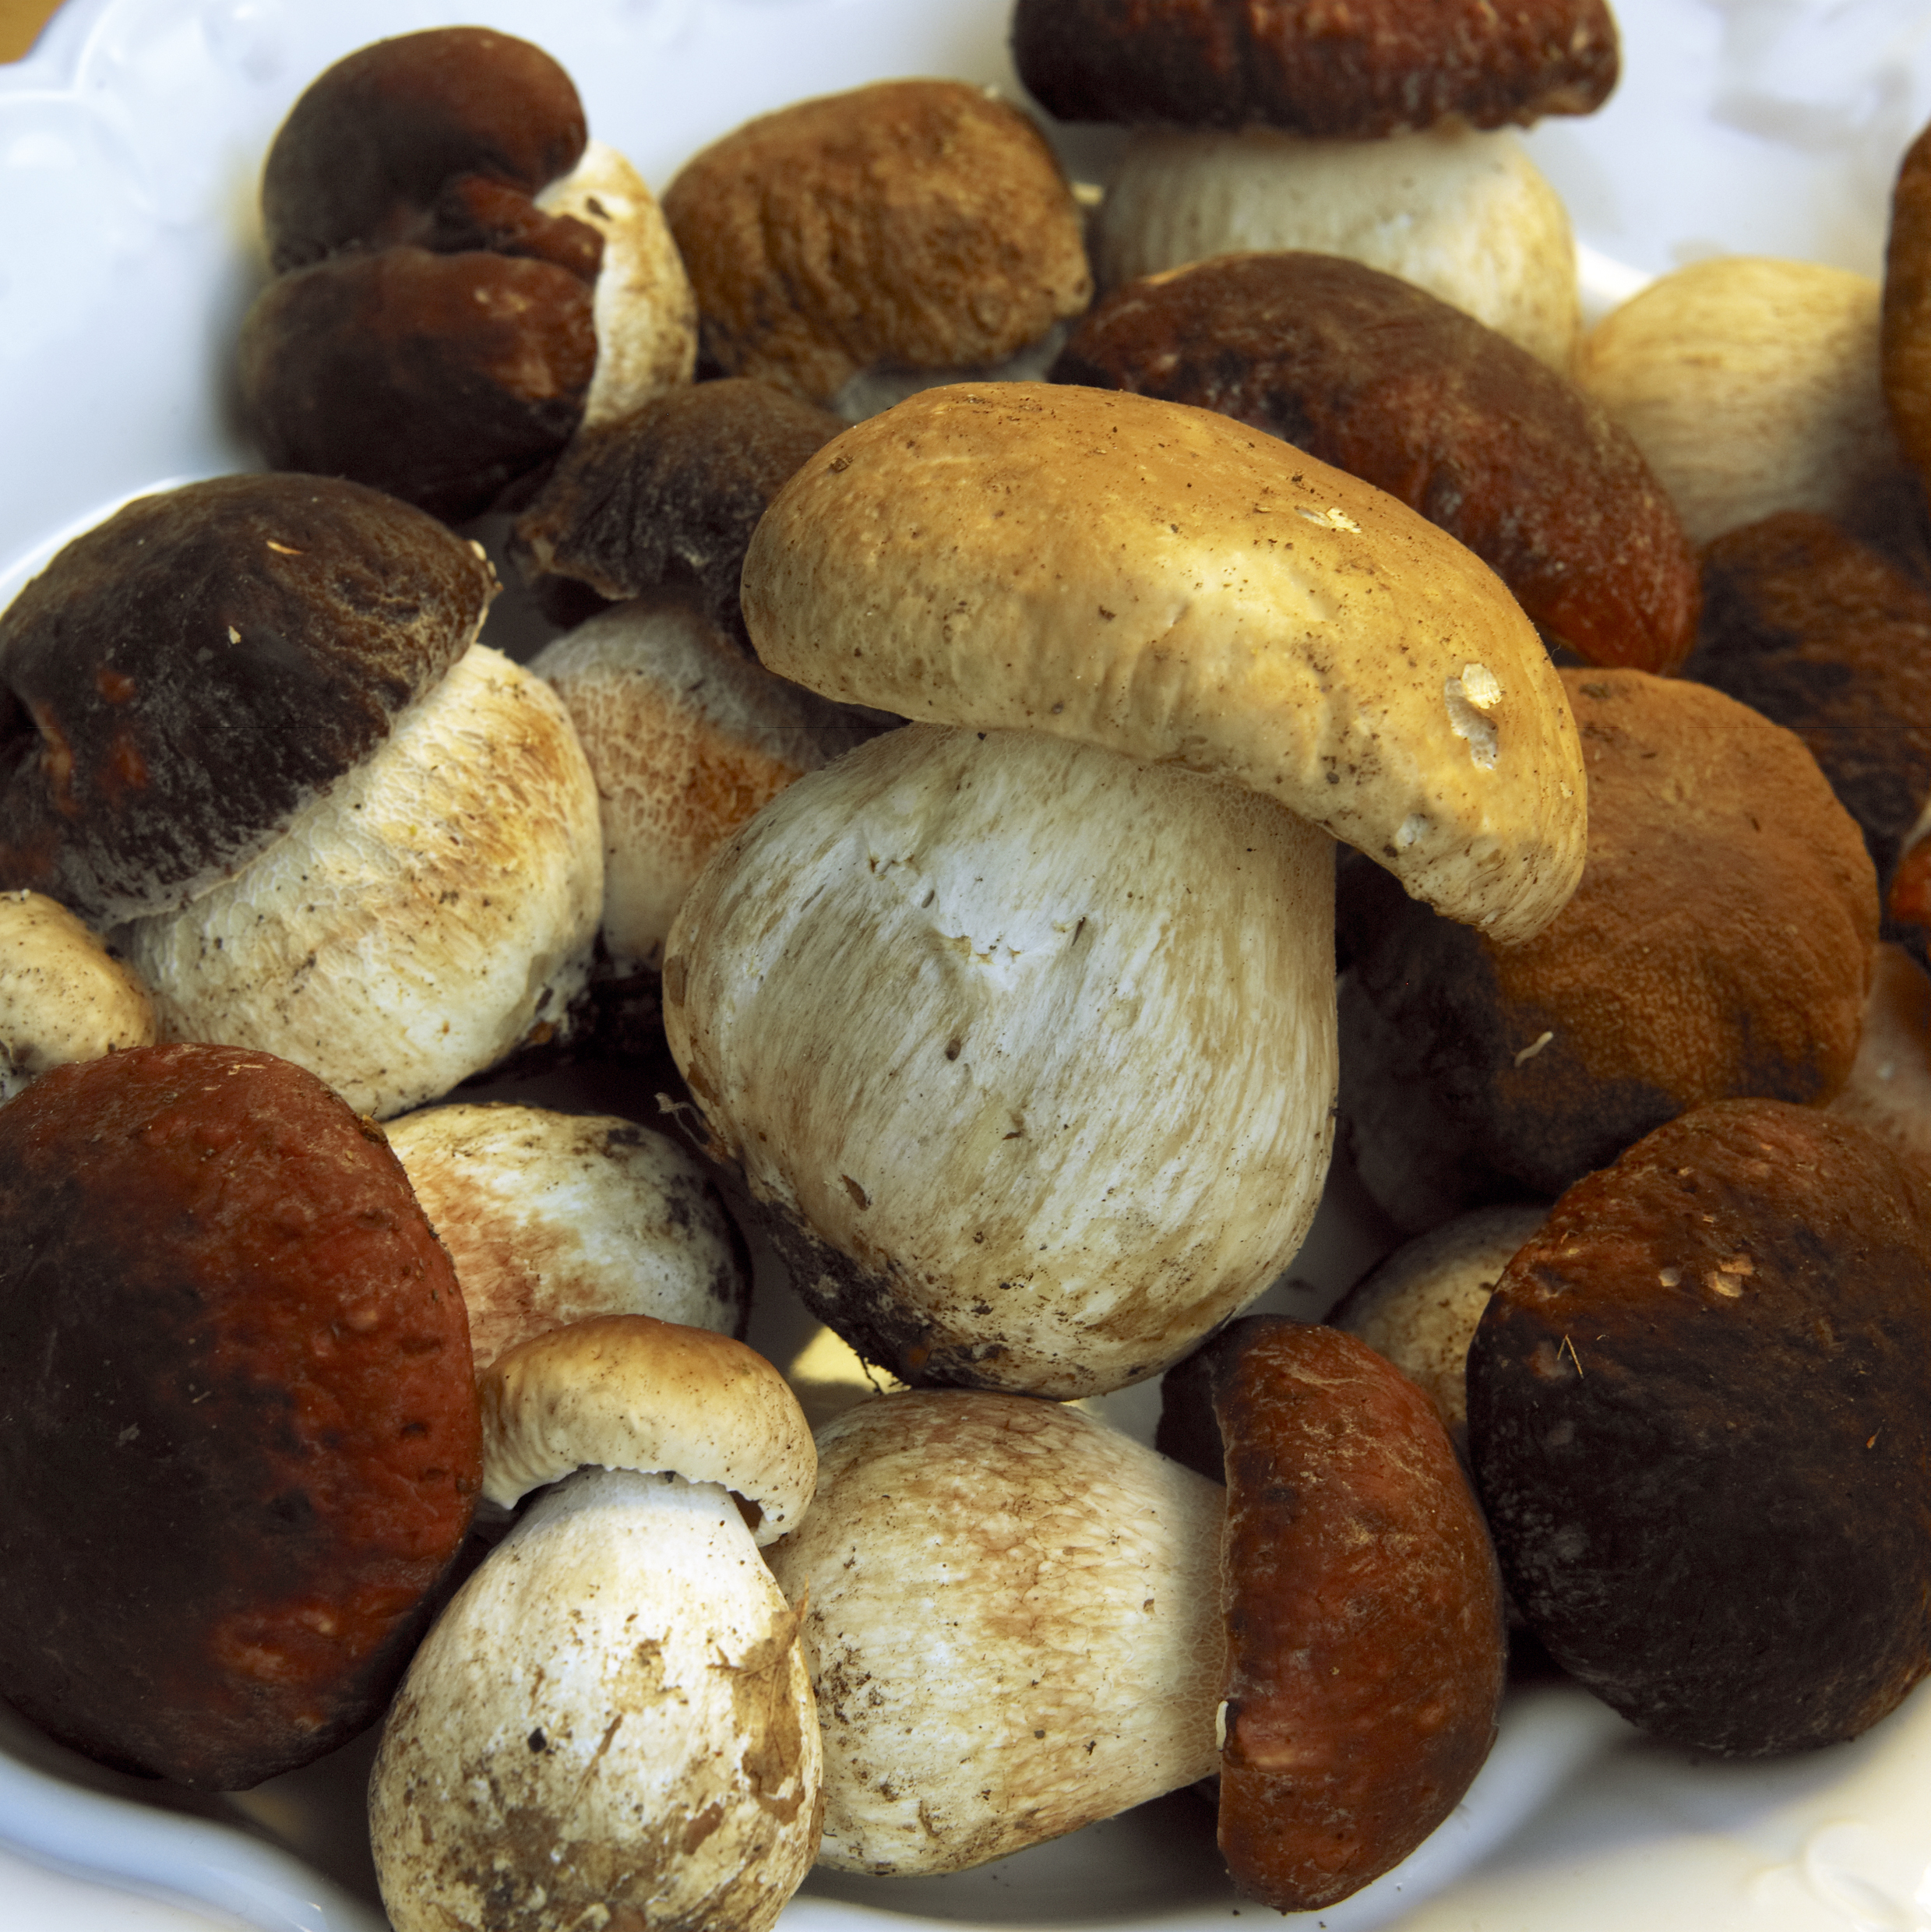 Mushrooms, wild, food and drink, croatia